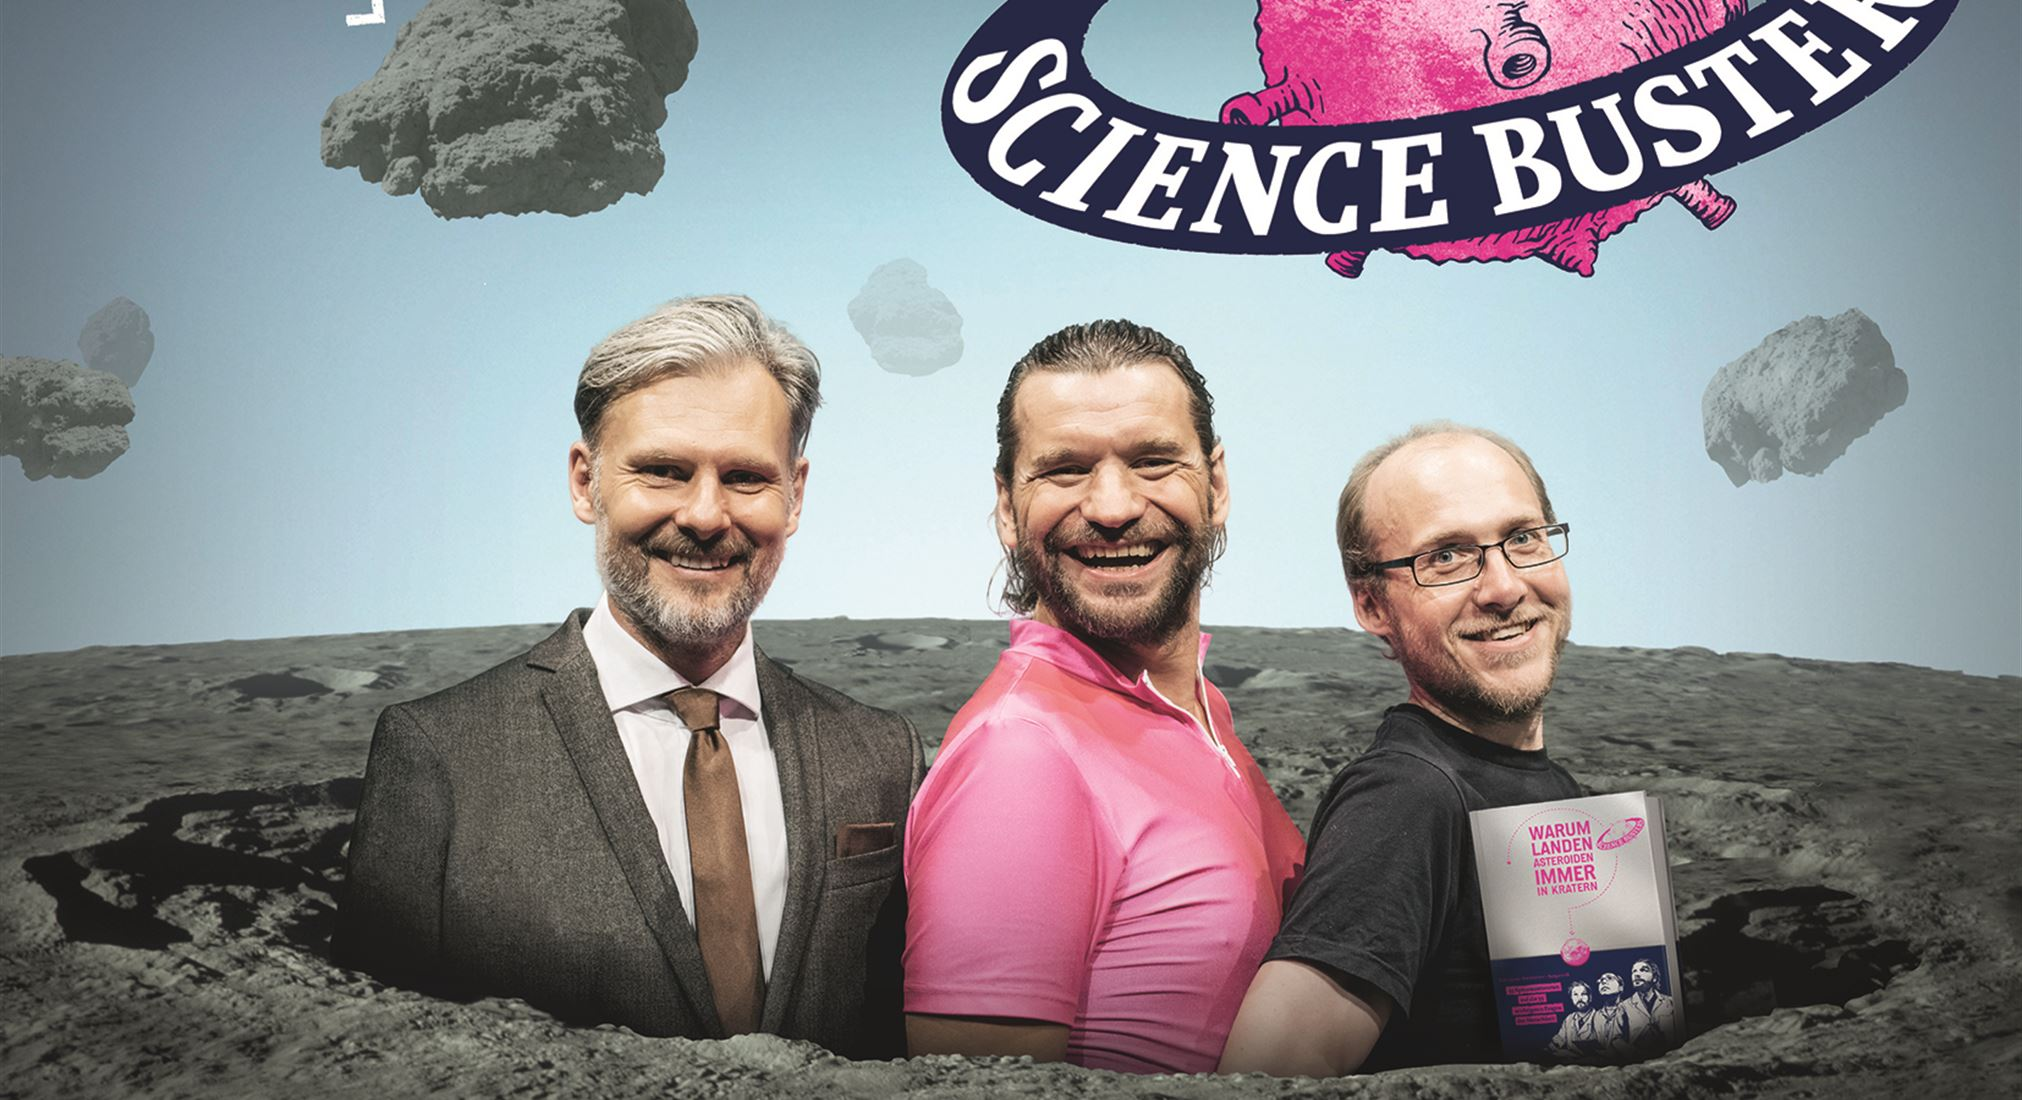 Science Busters am 30.01.2018 um 20:00 Uhr